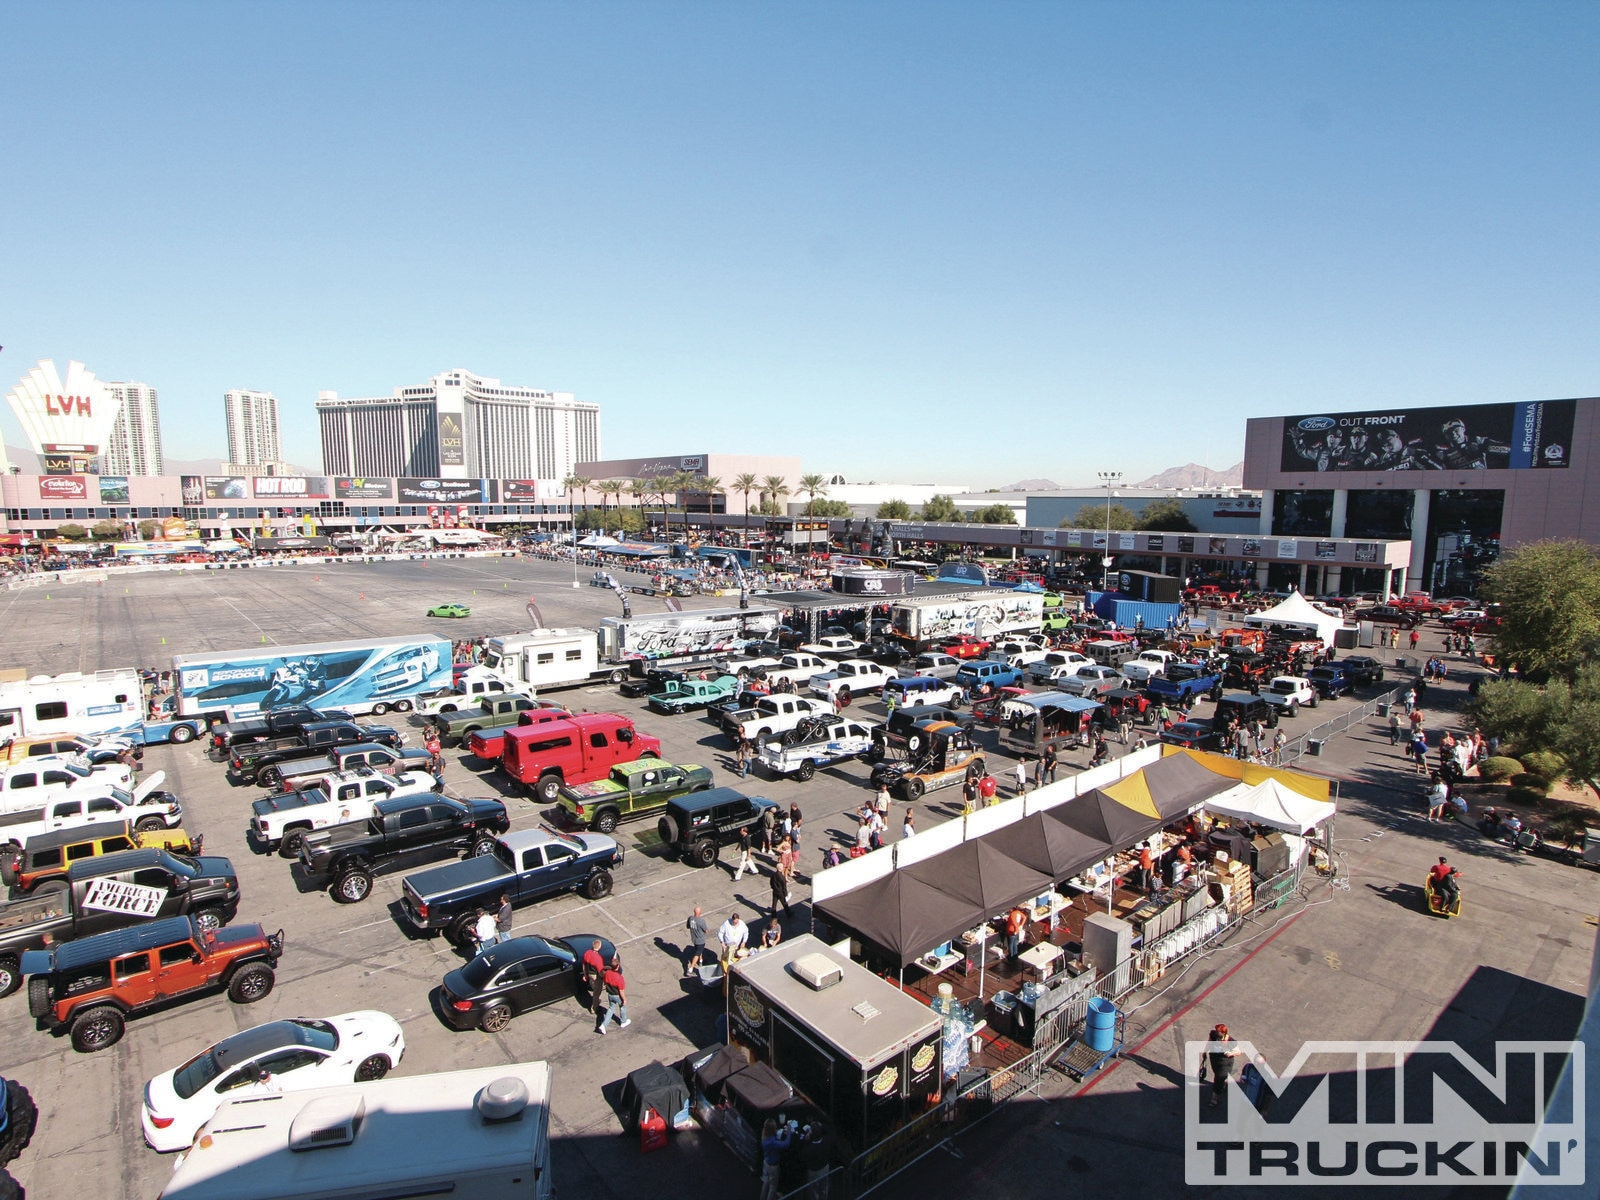 sema Show 2012 mini Trucking Corral